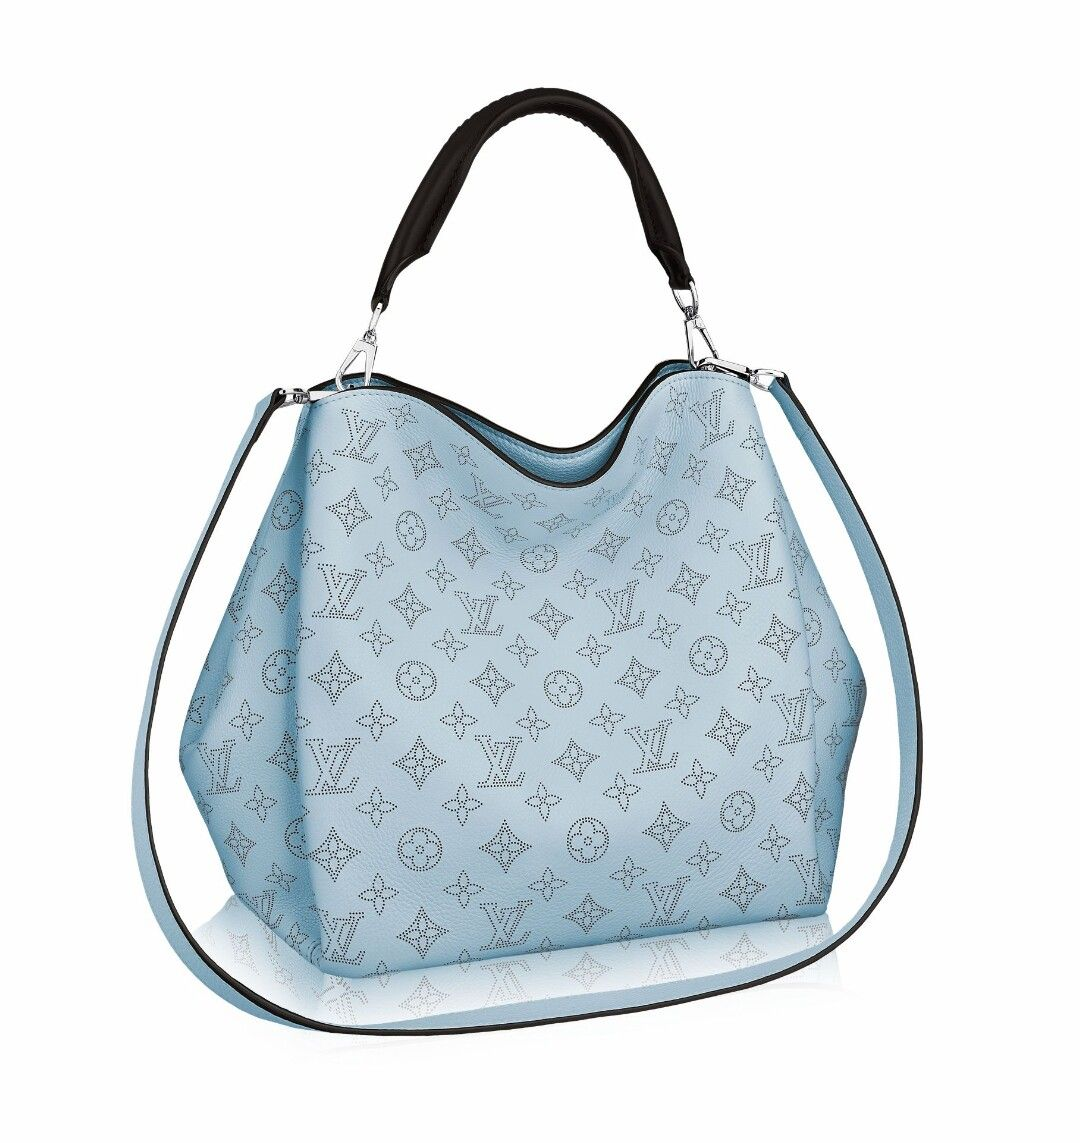 658e6595f857 Louis vuitton baby blue bag love  realdesignerhandbags